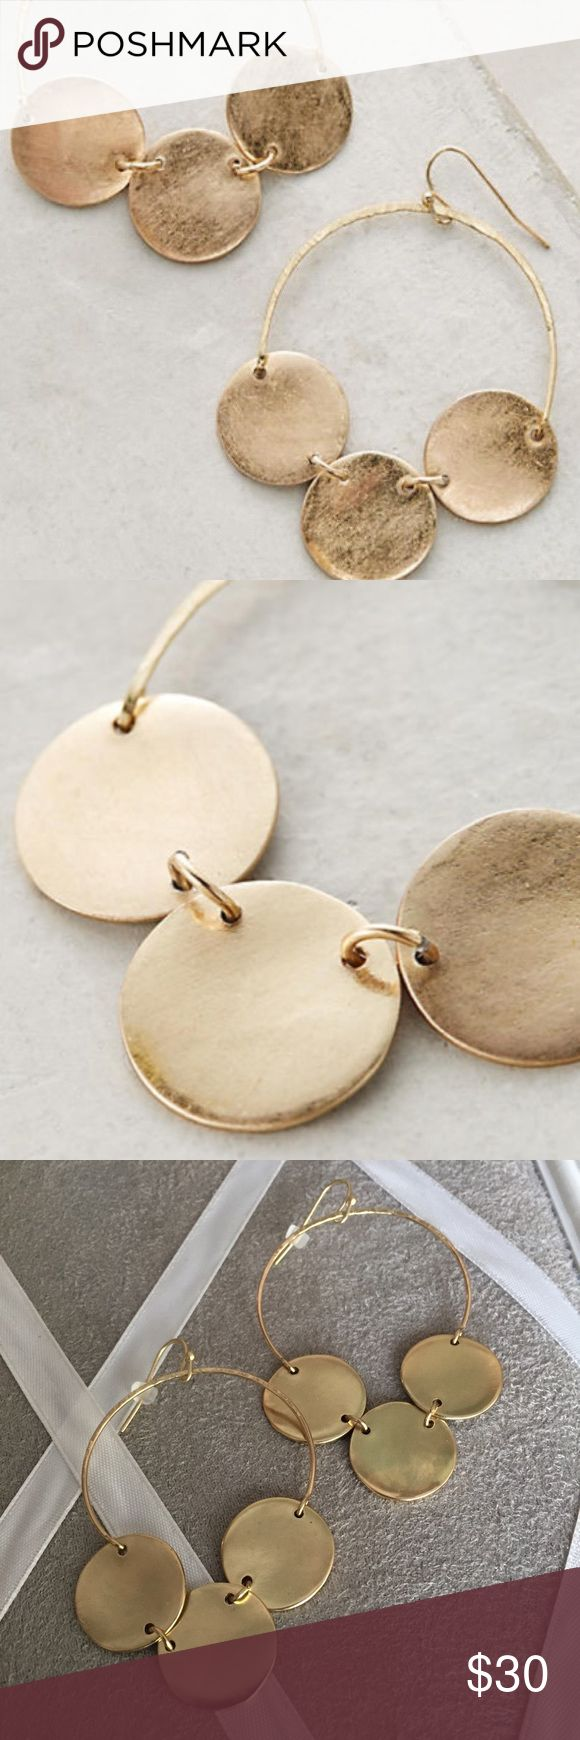 """anthropologie • little circles hoop earrings NWT • three little circles hoop earrings • gold metal • dimensions: 2"""" diameter • first two stock photos • no trades Anthropologie Jewelry Earrings"""